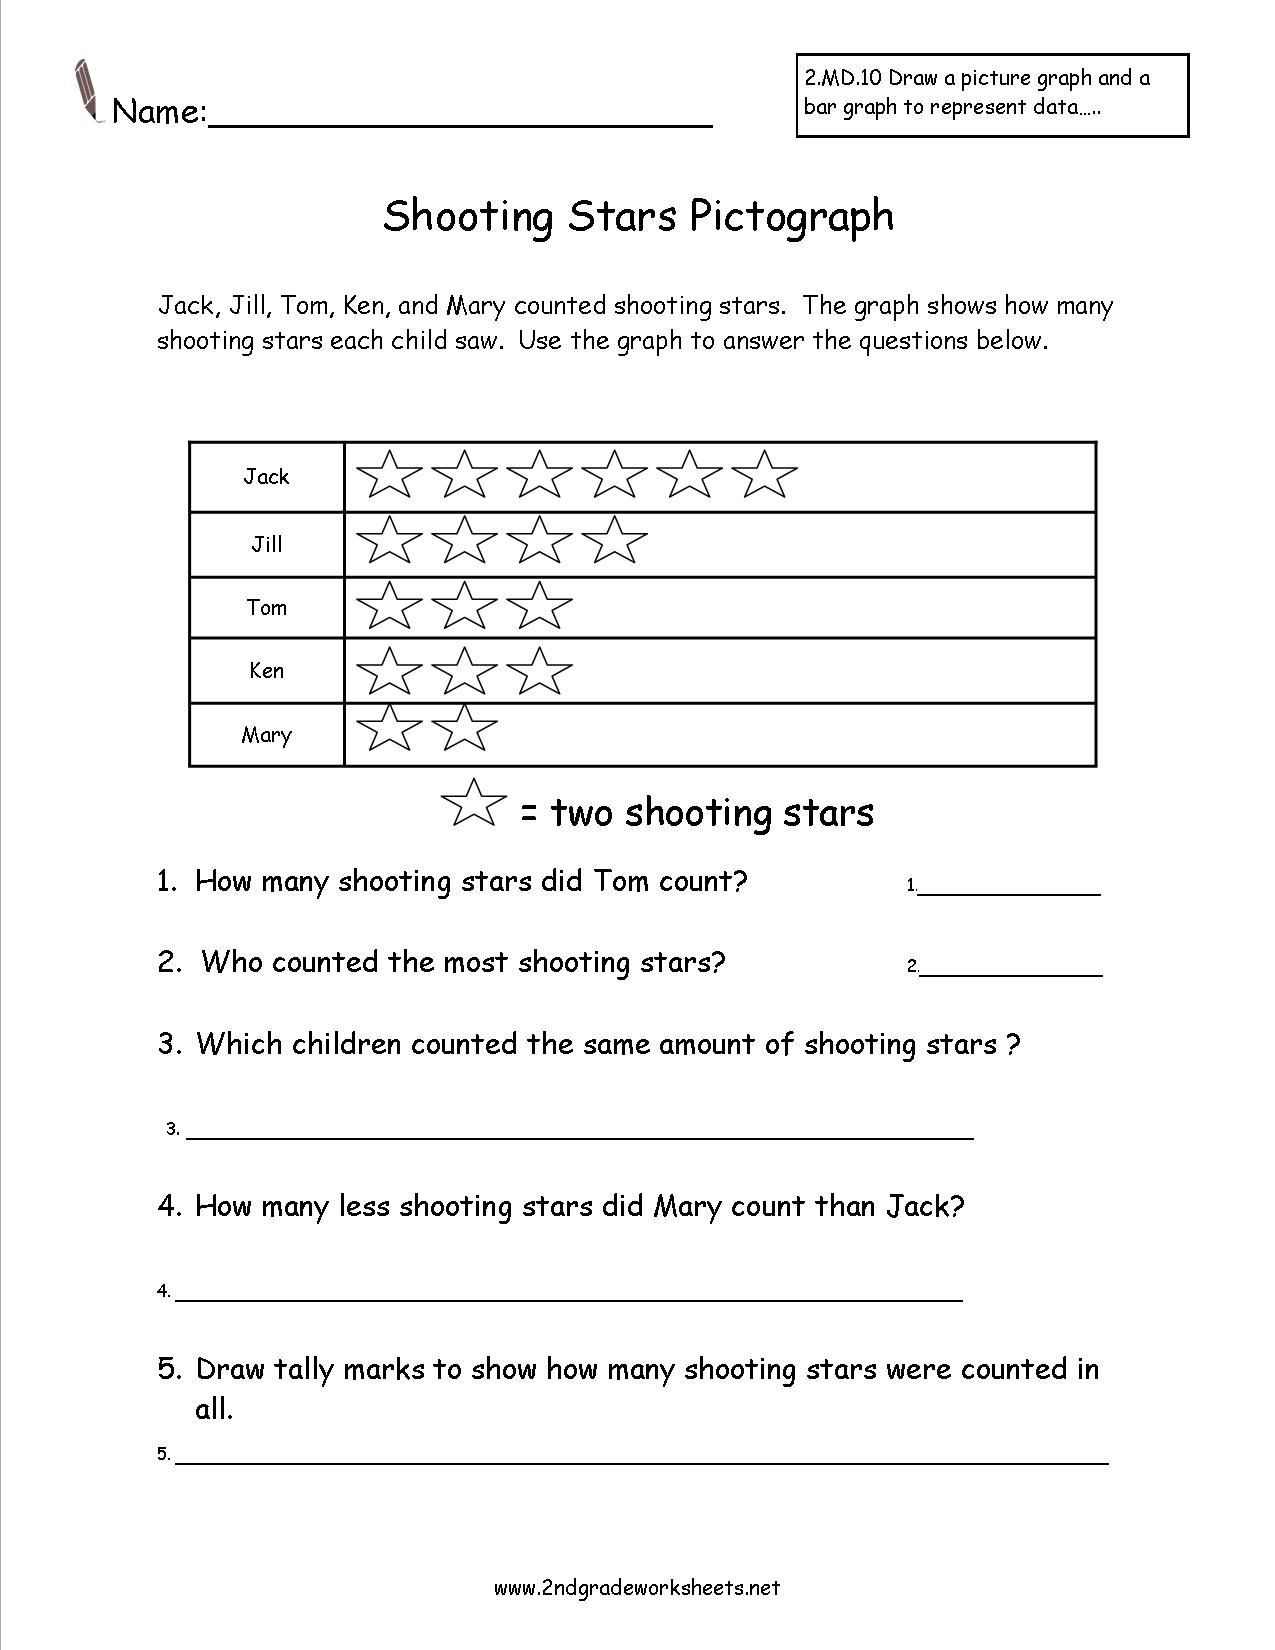 Frequency Table Worksheets 3rd Grade Shooting Stars Pictograph Worksheet